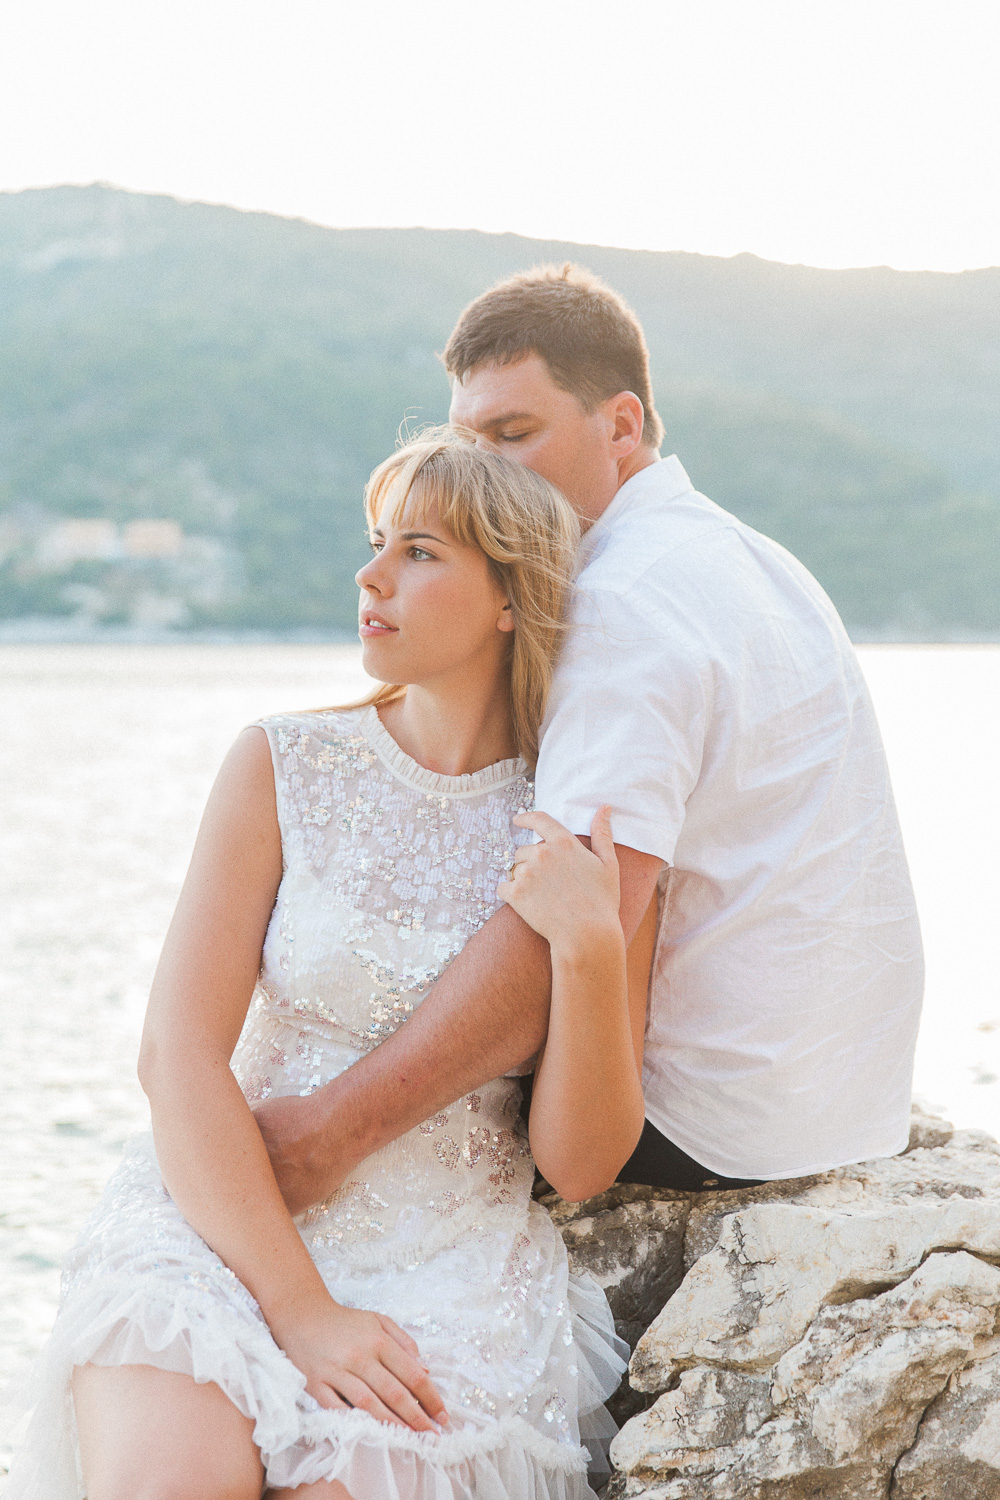 Couple sitting together on a rock over looking the sea in Lefkada, Greece